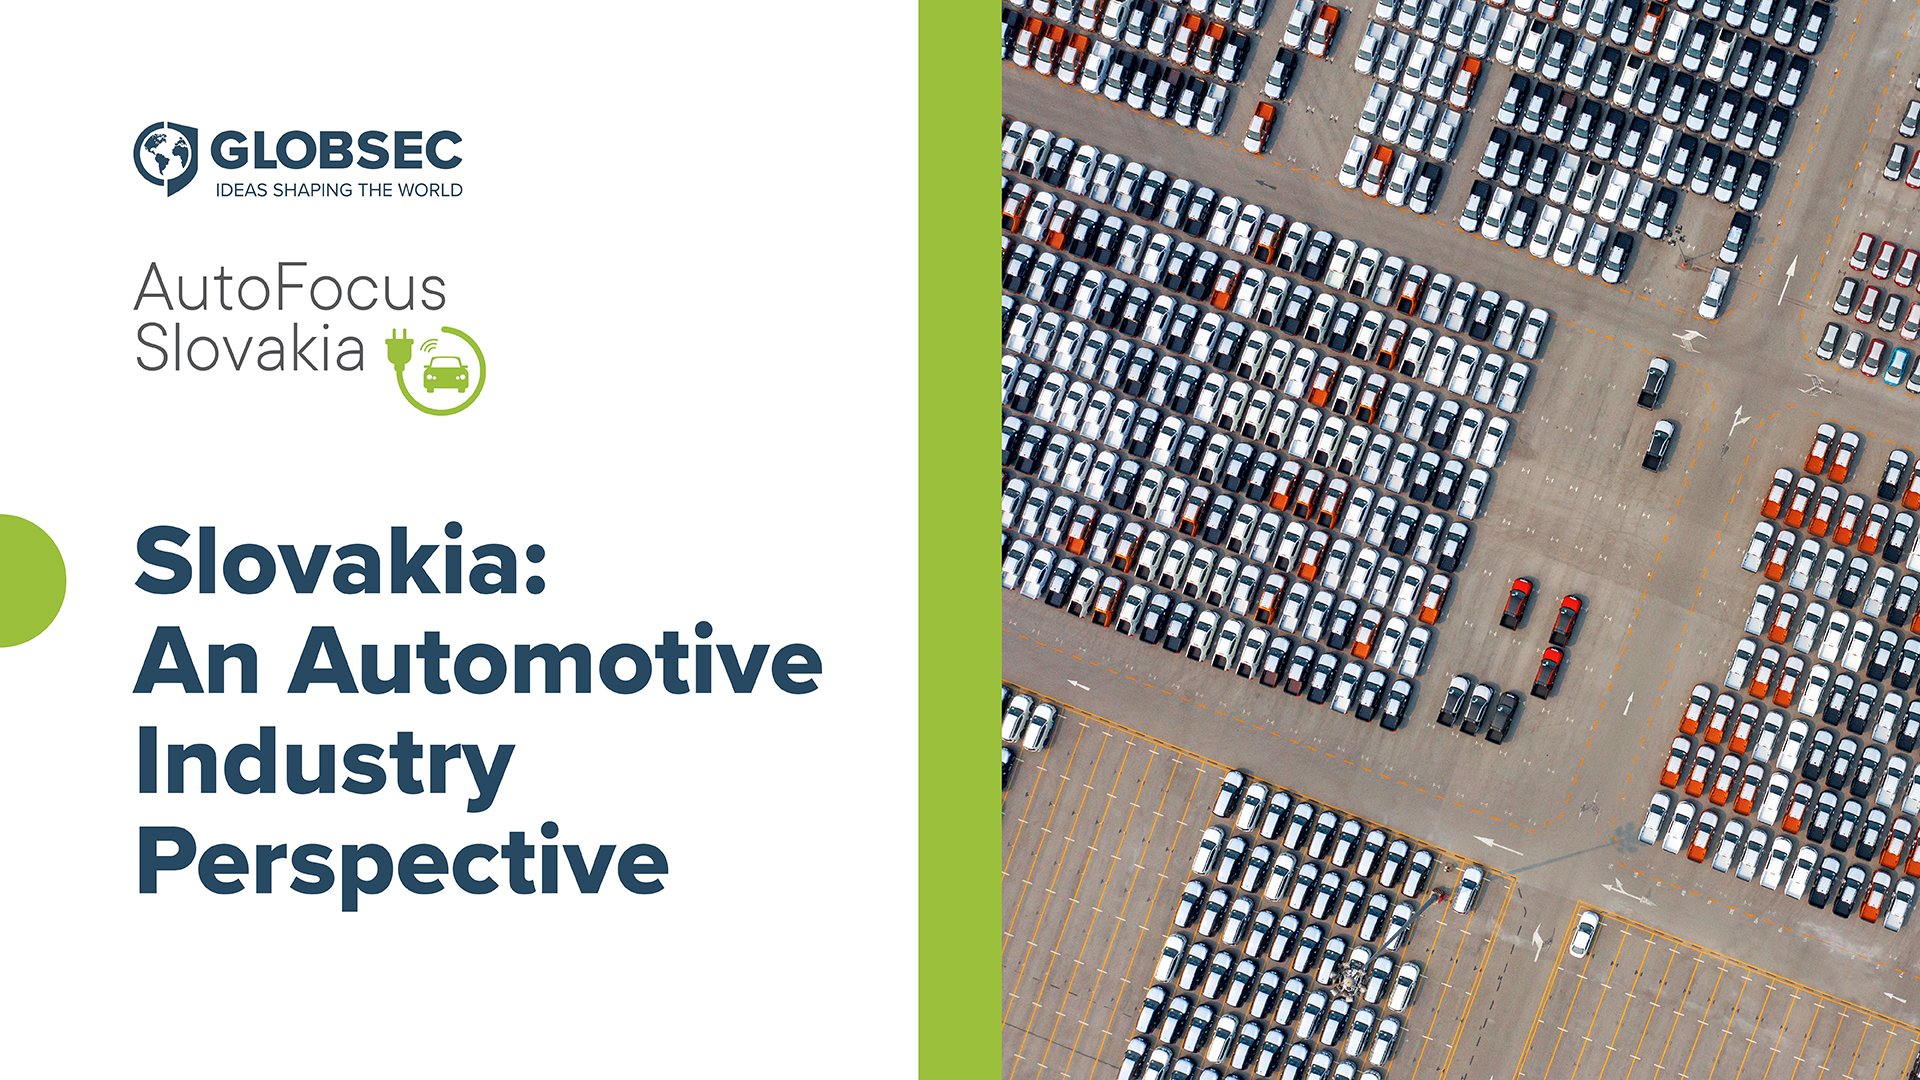 Slovakia: An Automotive Industry Perspective